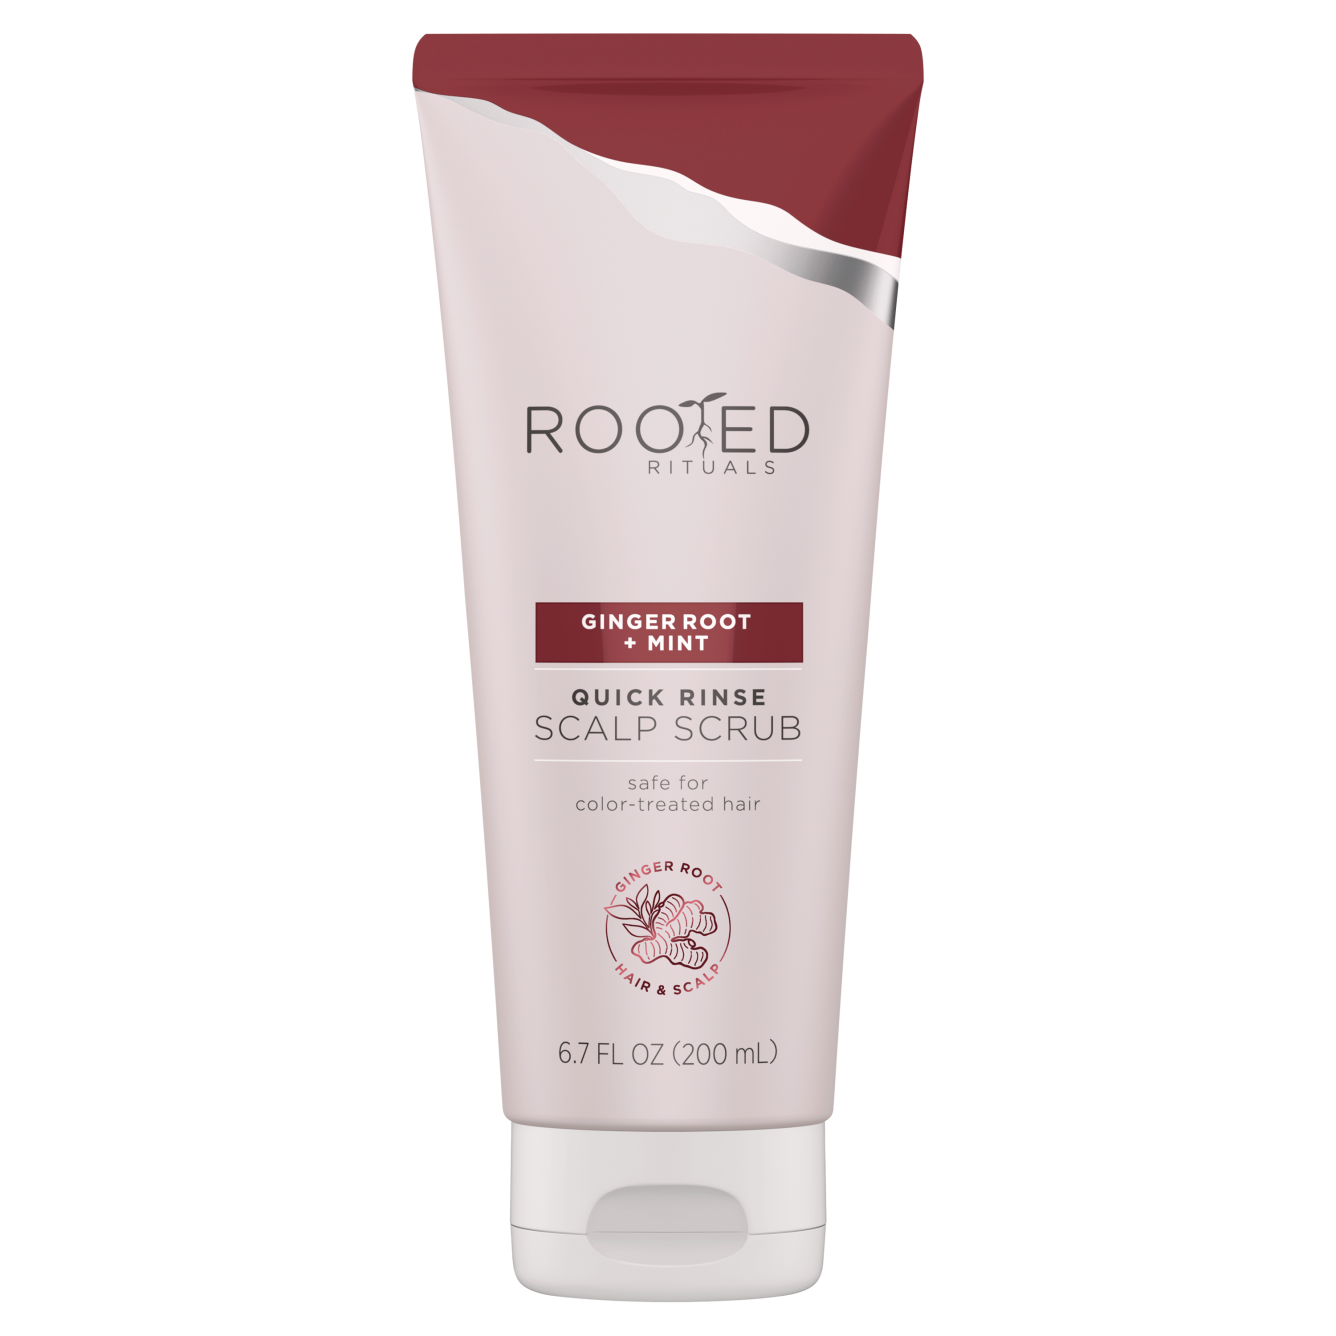 Rooted Rituals Quick Rinse Scalp Scrub